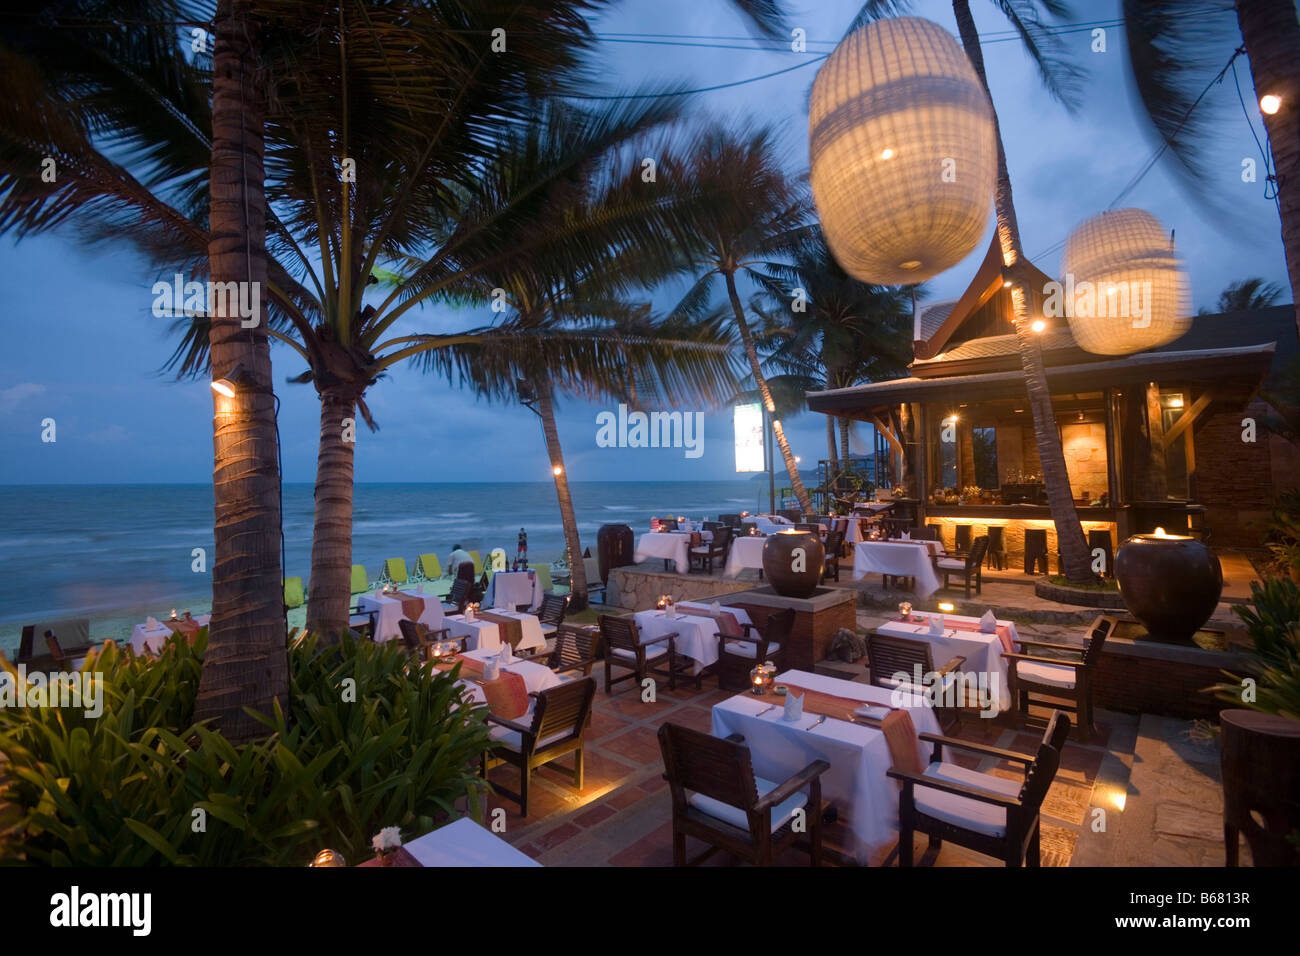 Open Air Terrace Of A Restaurant Chaweng Beach Hat Chaweng South Stock Photo Alamy